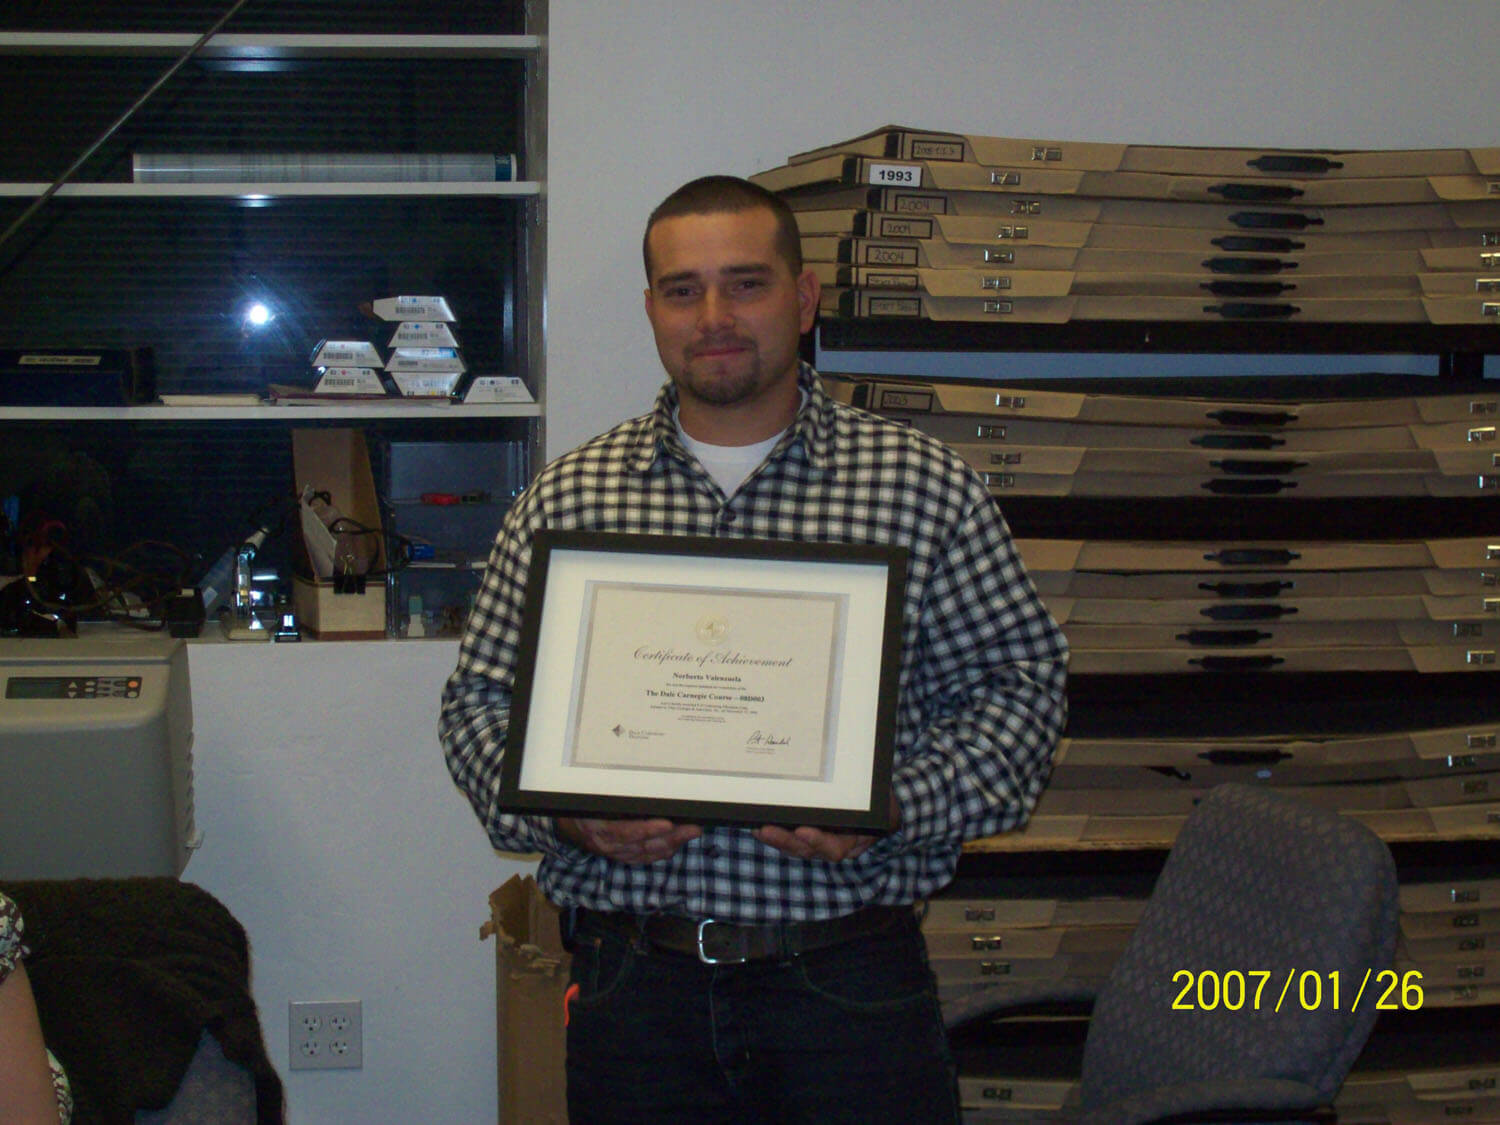 Worker receiving certification